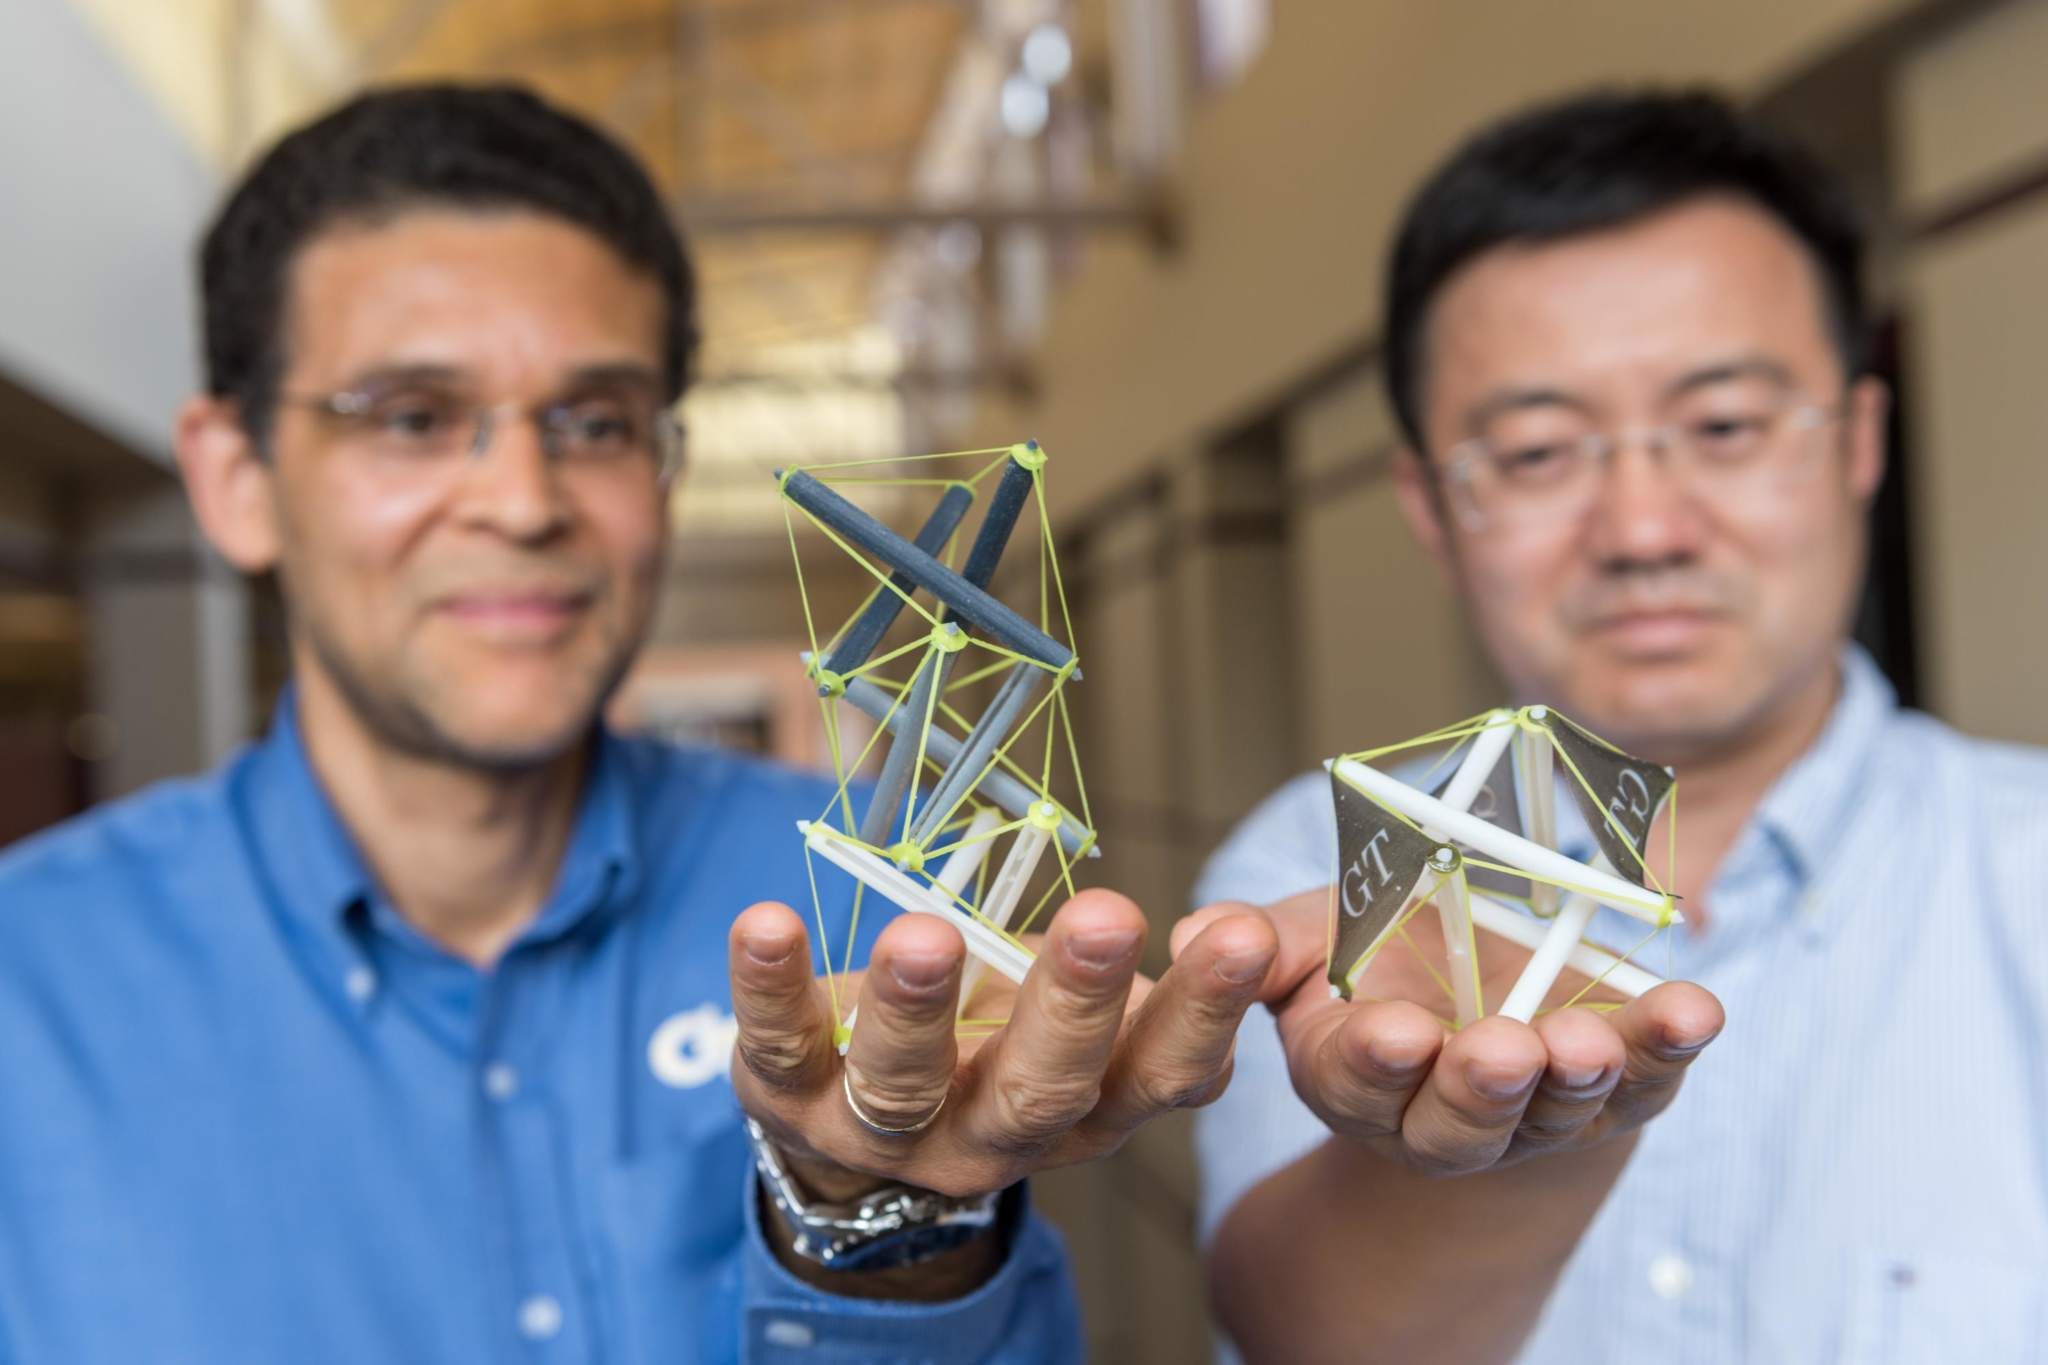 Georgia Tech professors Glaucio Paulino and Jerry Qi holding their tensegrity structures. Photo via Rob Felt/Georgia Tech.